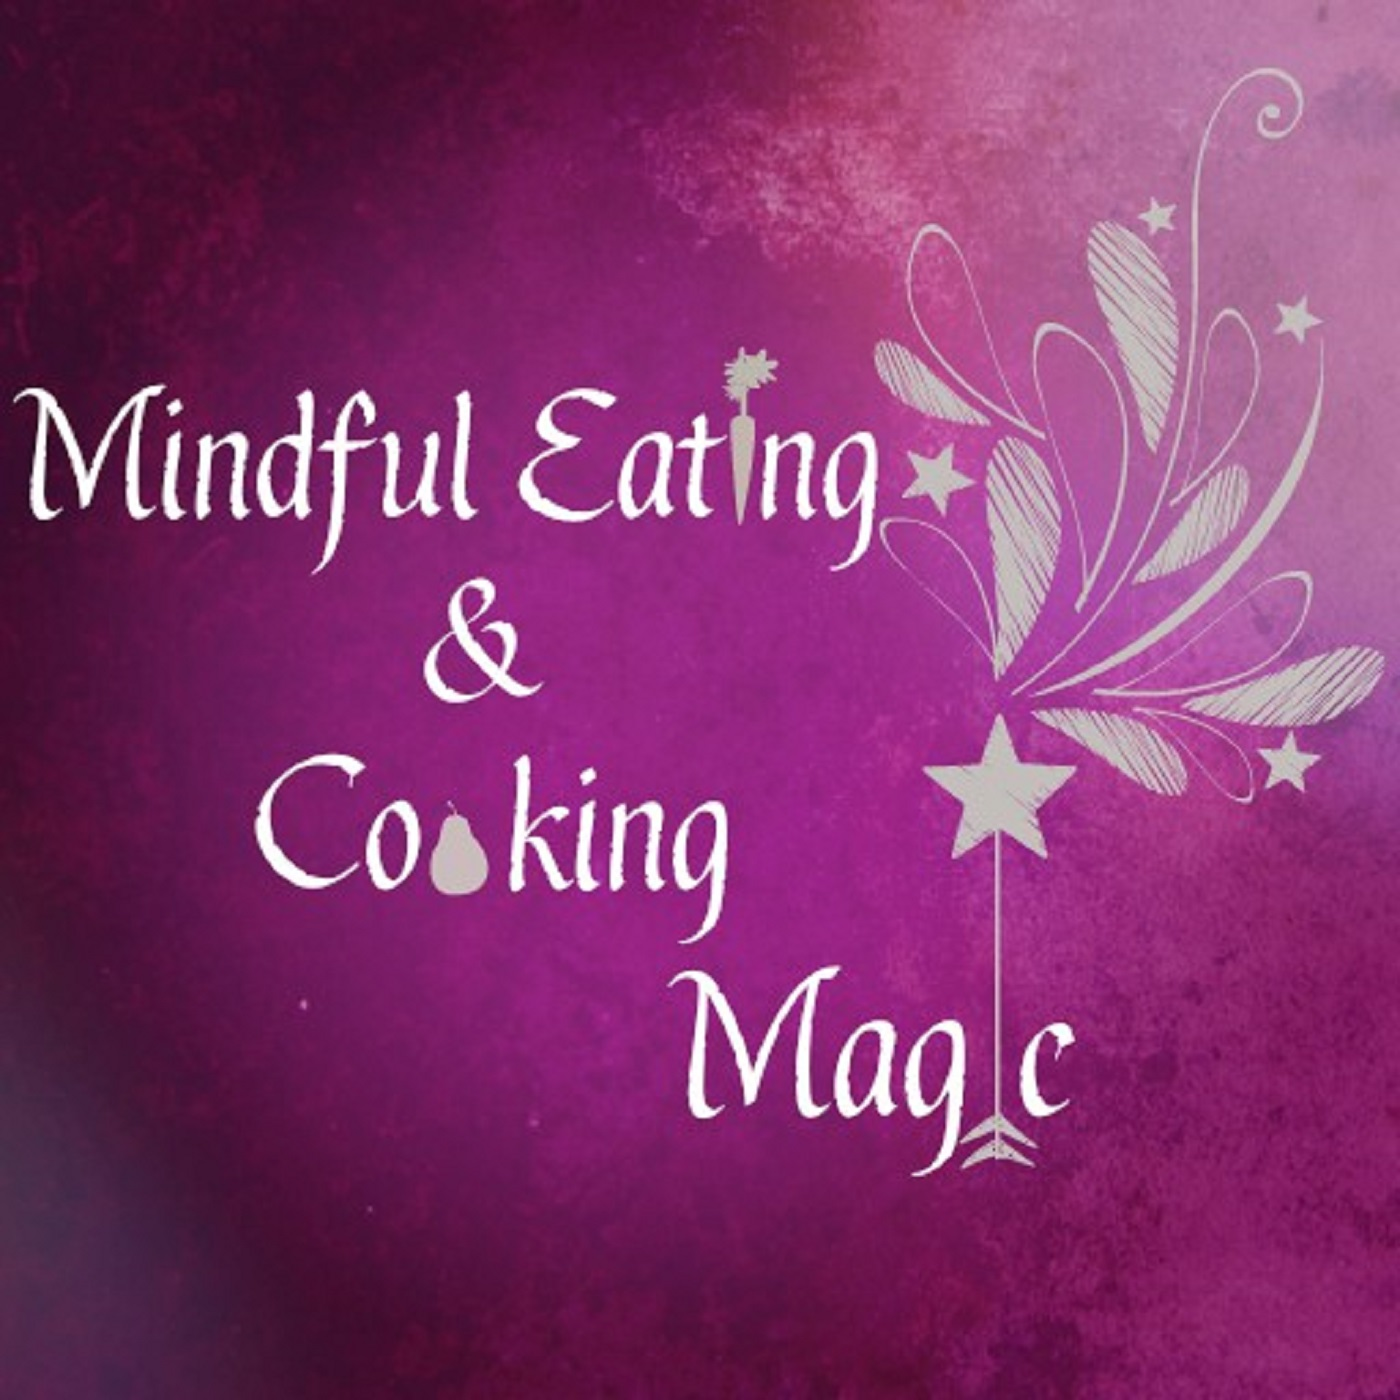 Mindful Cooking & Eating Magic